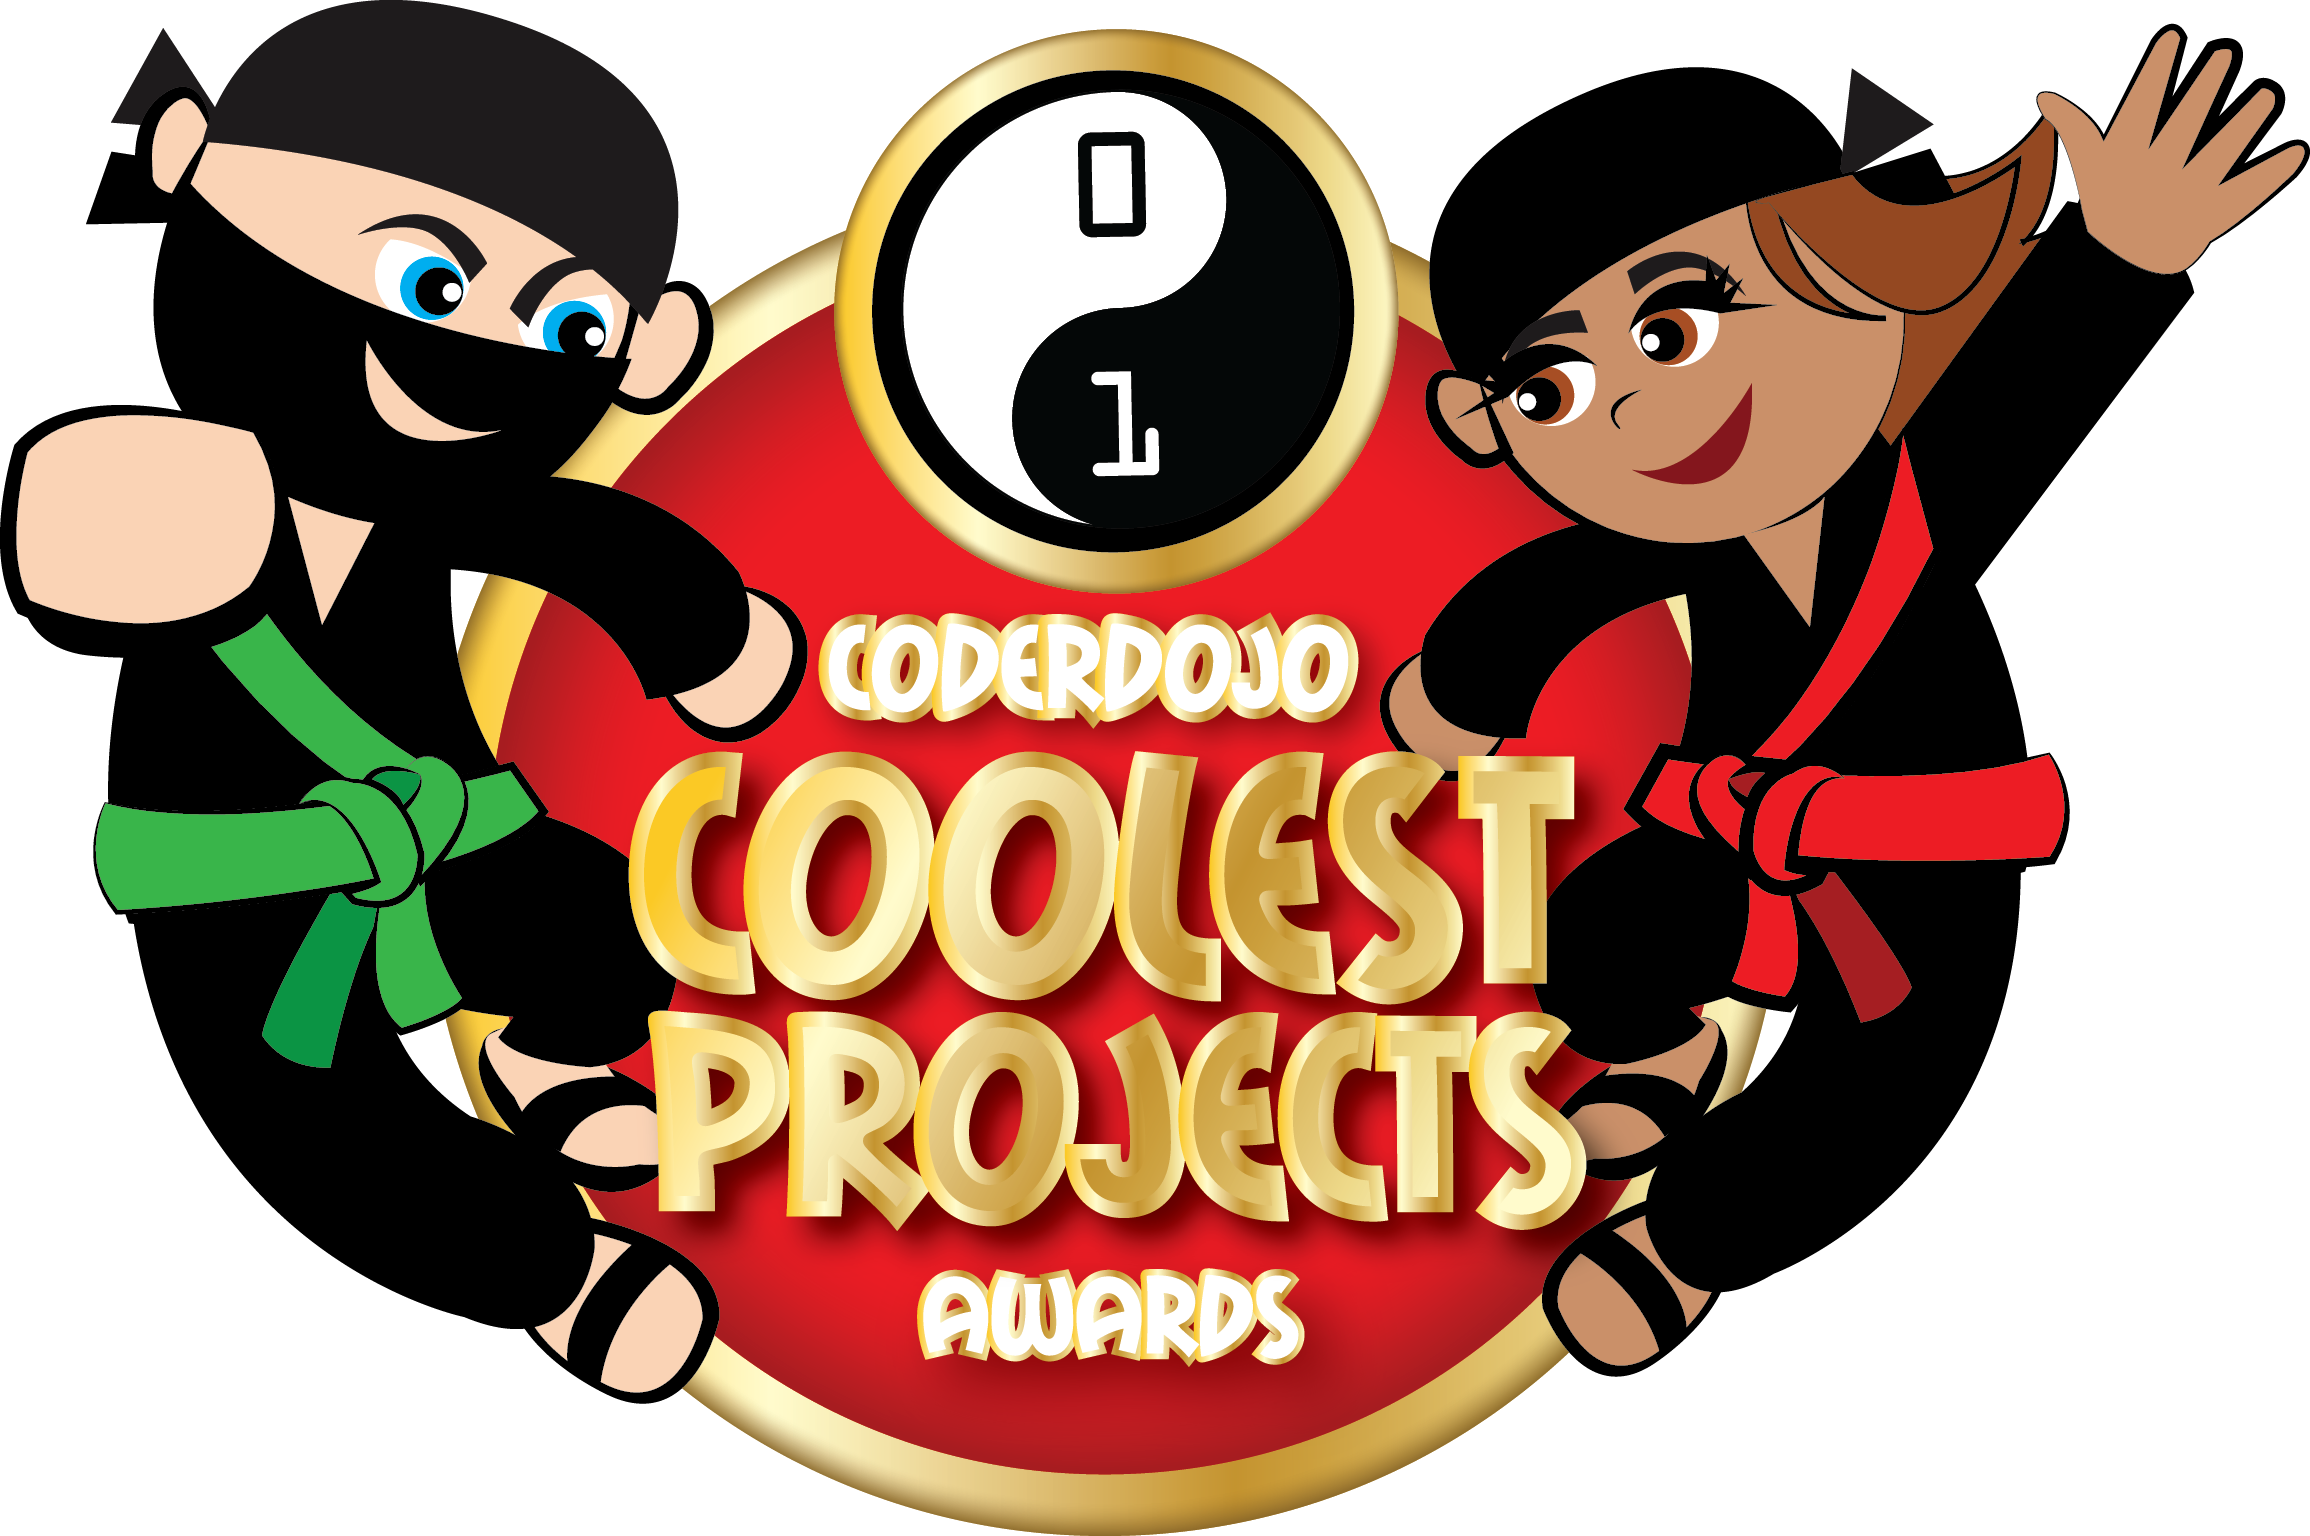 CoderDojo Coolest Projects 2016